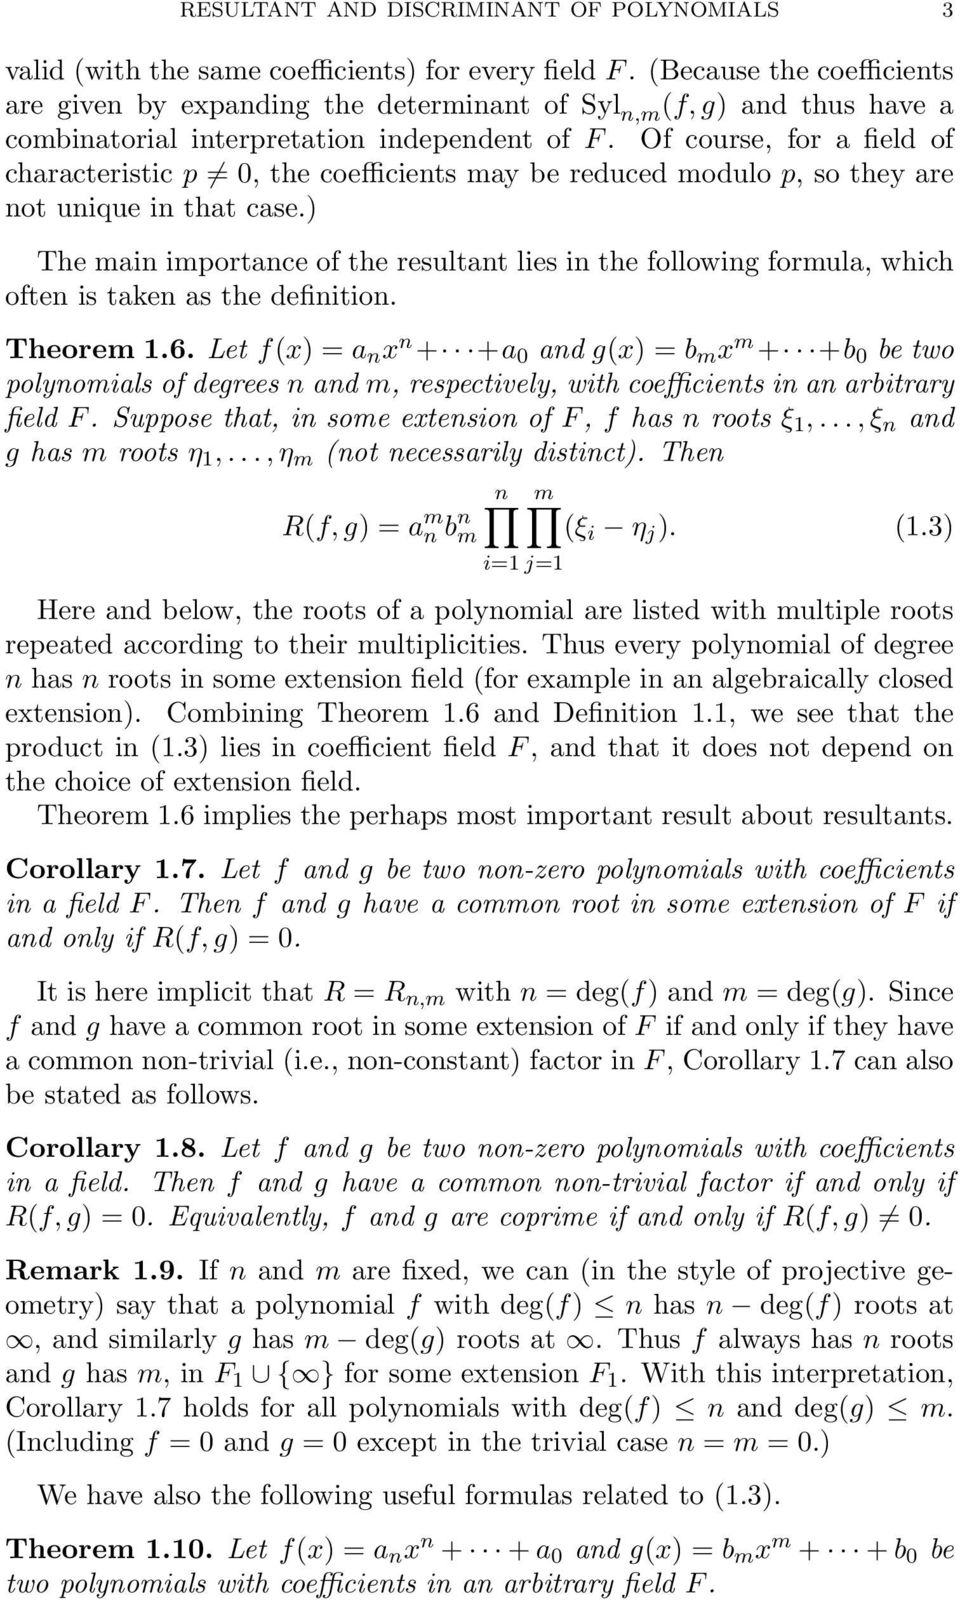 Of course, for a field of characteristic p 0, the coefficients may be reduced modulo p, so they are not unique in that case.